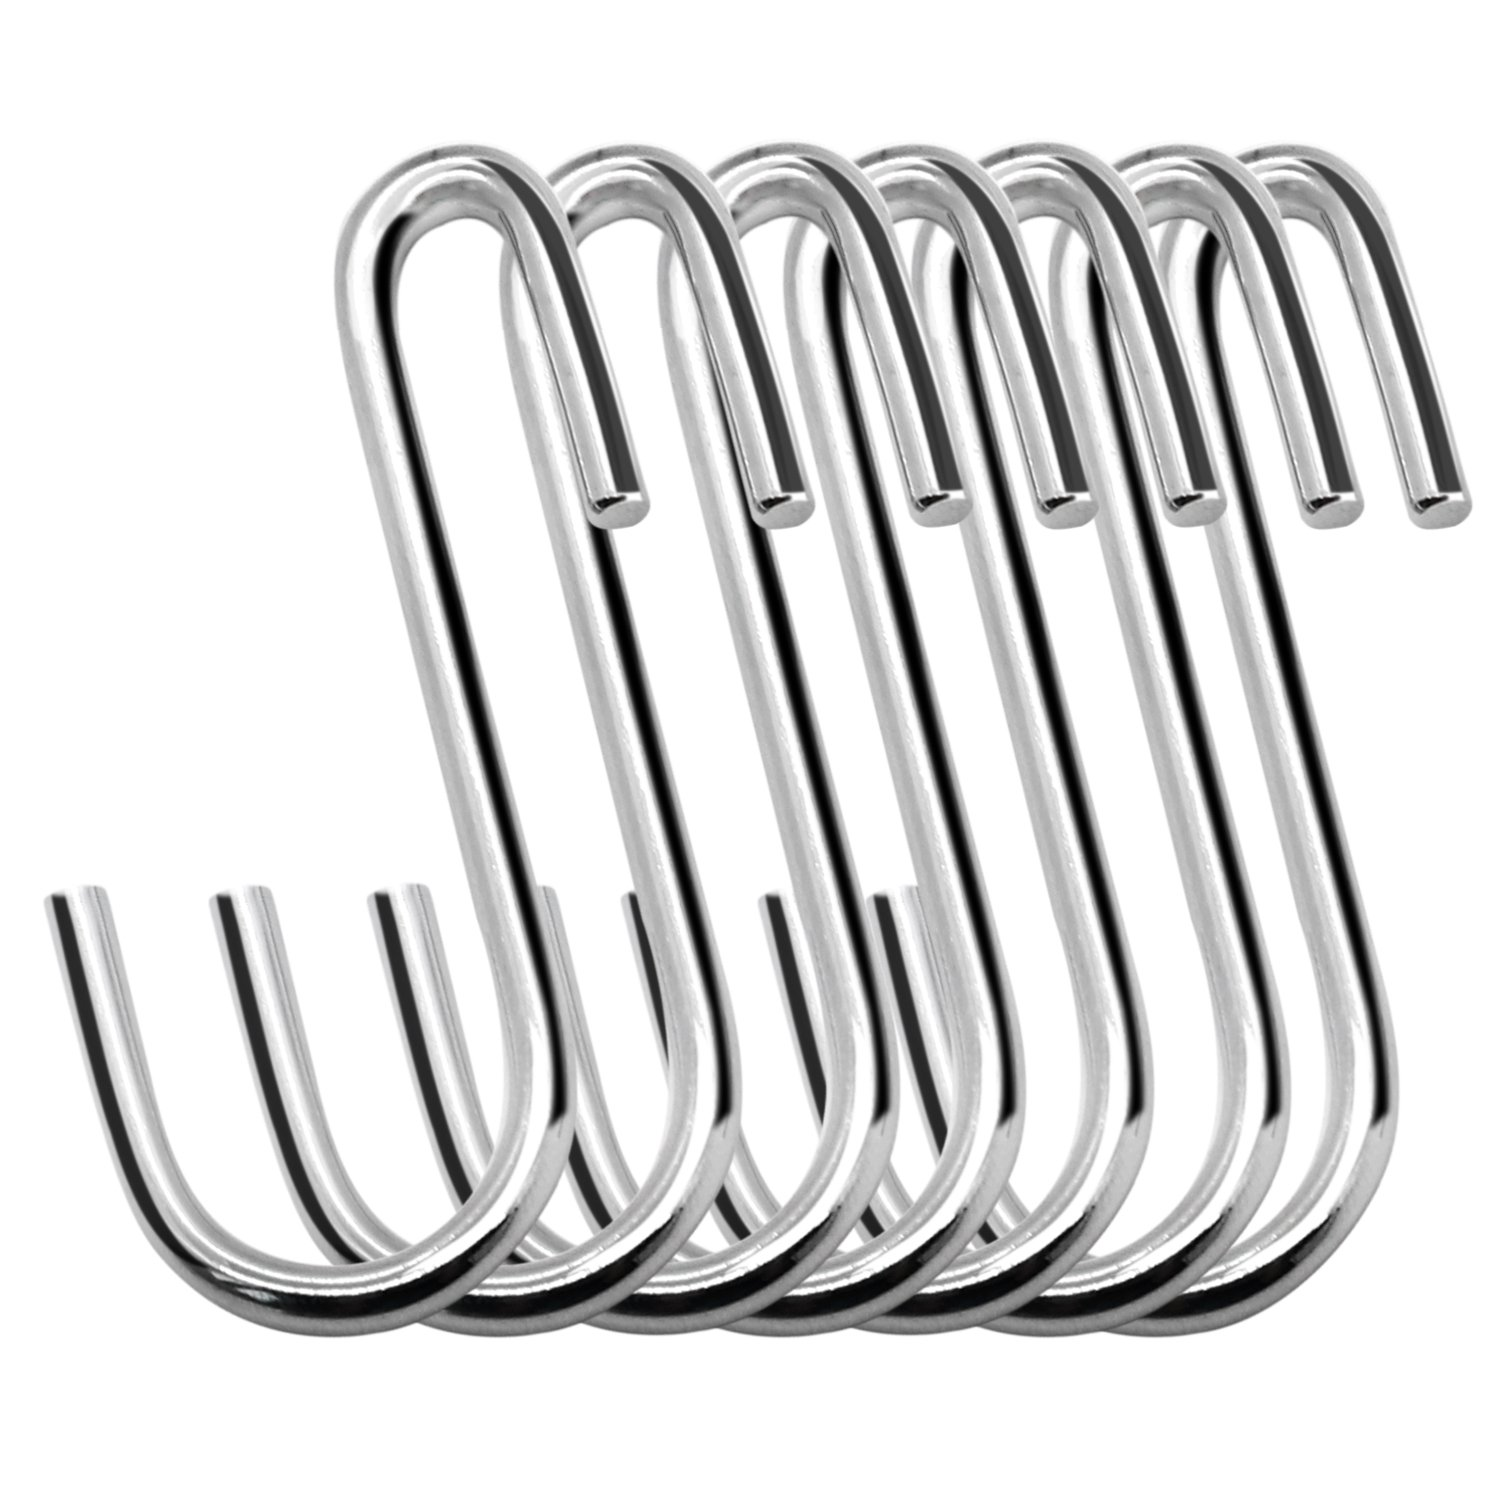 30 Pack Esfun Heavy Duty S Hooks Pan Pot Holder Rack Hooks Hanging Hangers S Shaped Hooks for Kitchenware Pots Utensils Clothes Bags Towels Plants